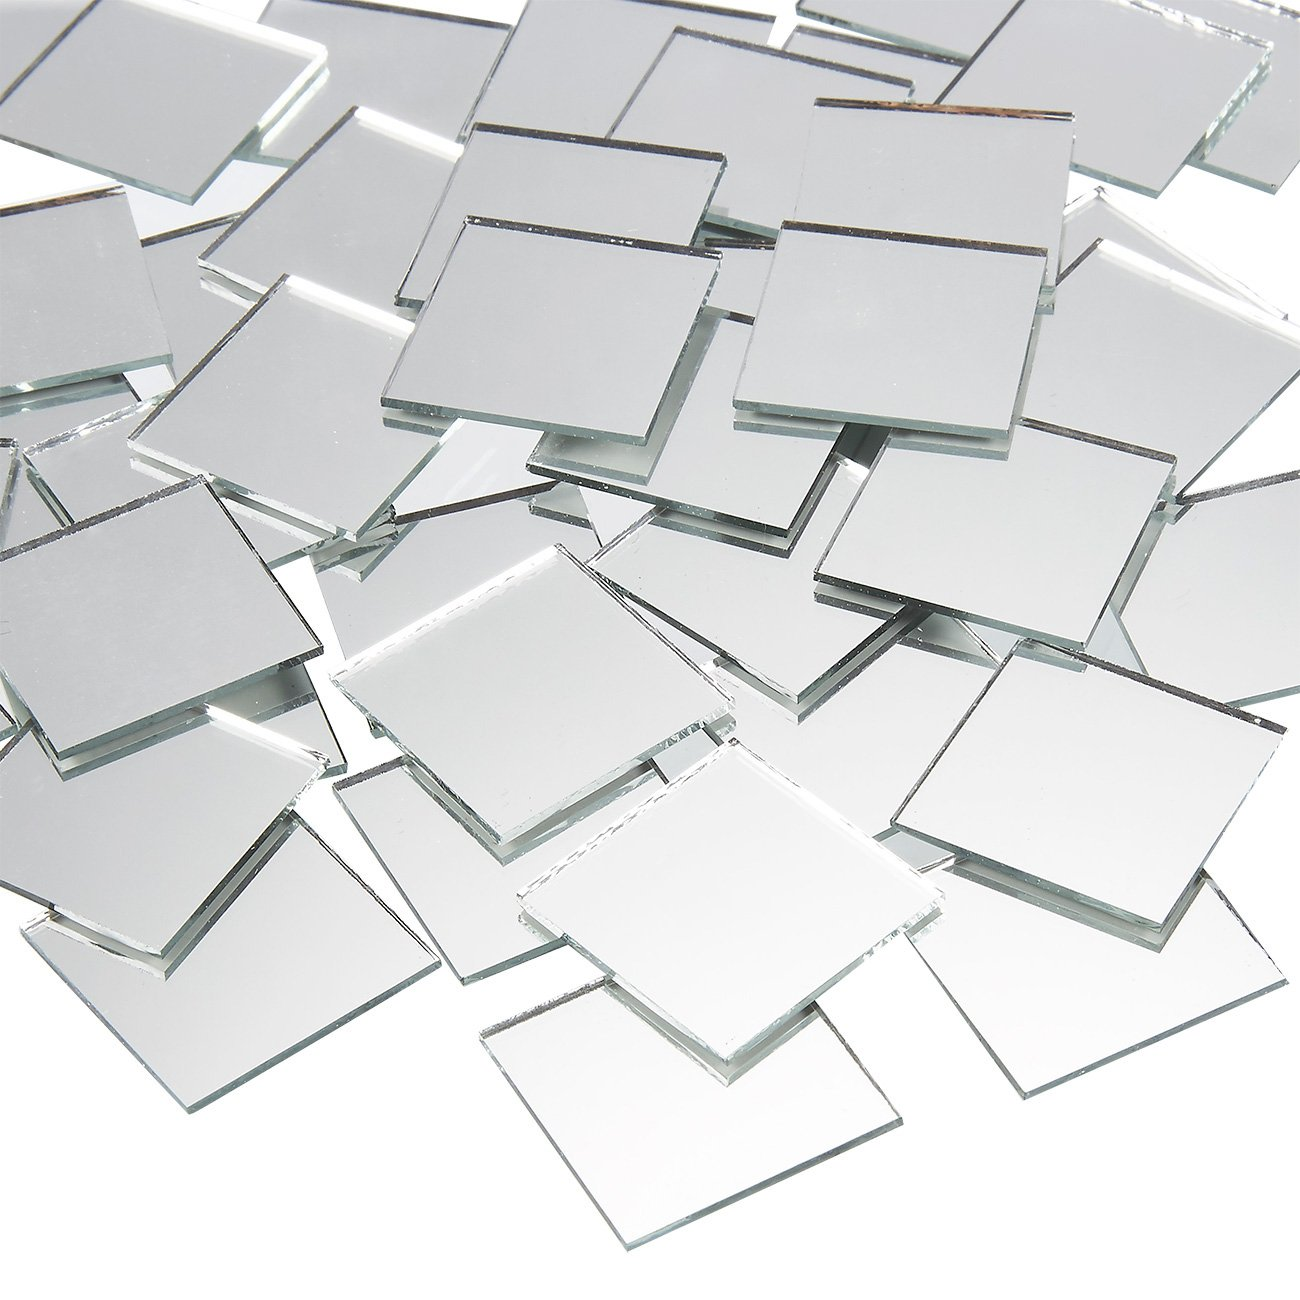 Craft Mirrors - 120-Pack Bulk Square Mirror Tiles - 1x1 Inch Glass Mosaic Tiles by Juvale